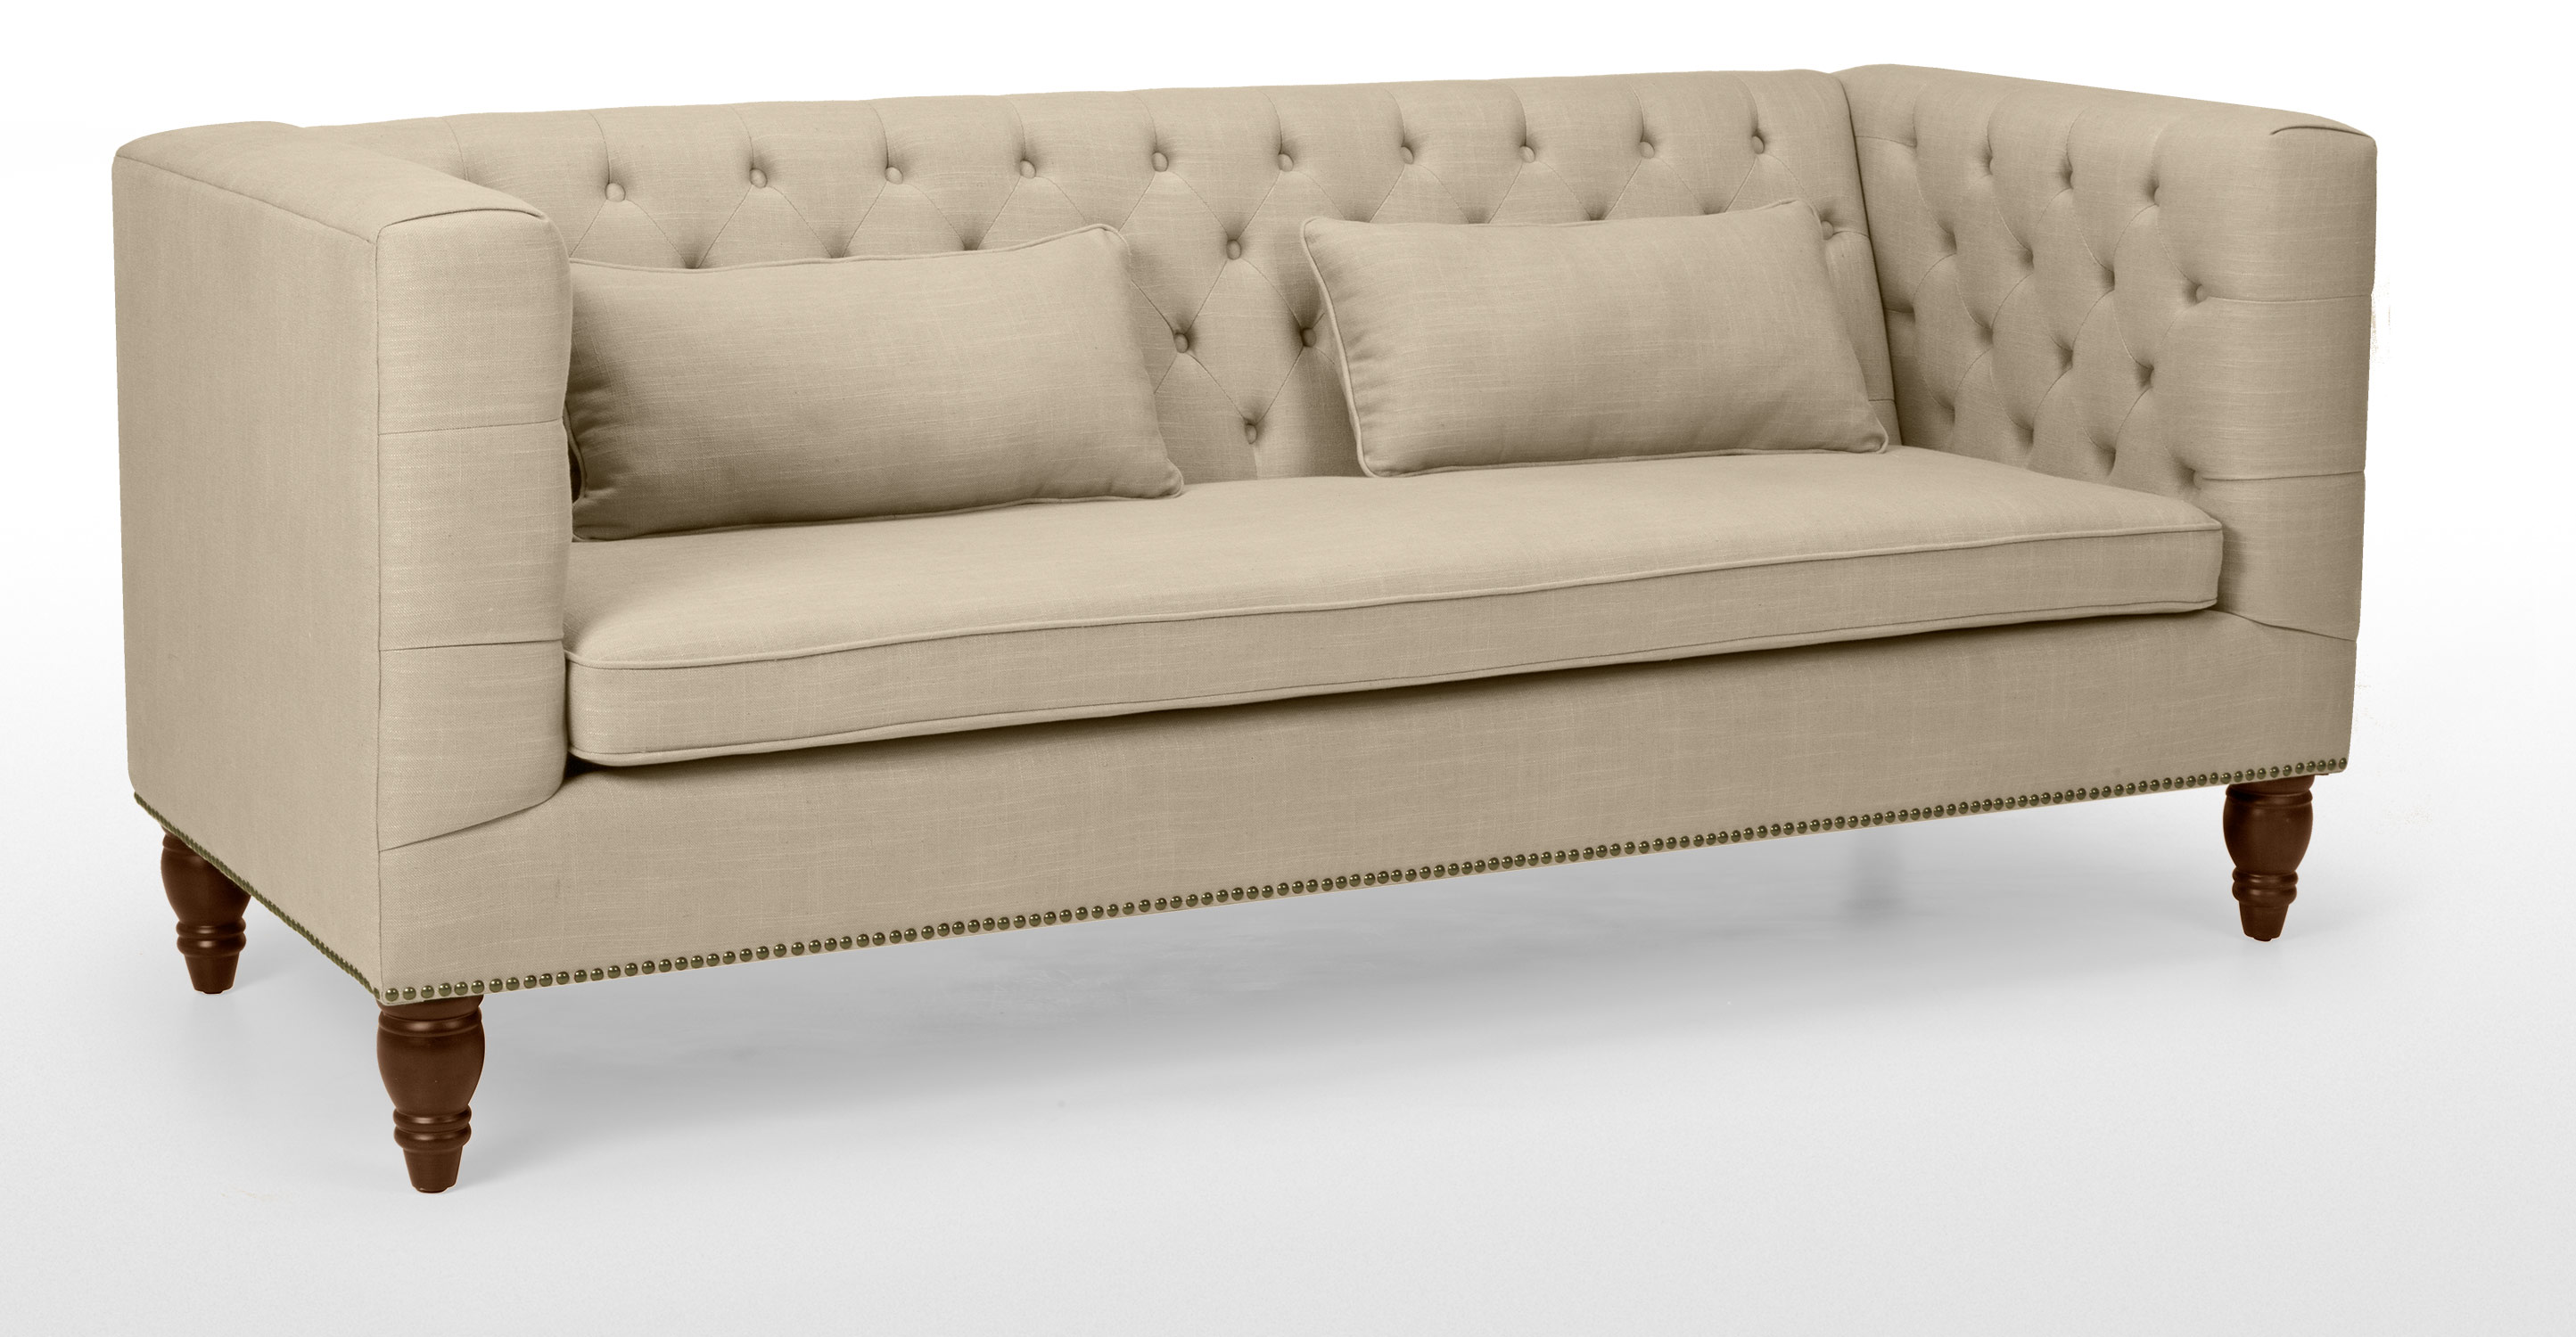 flynn 3 seater sofa chesterfield fabric settee biscuit beige. Black Bedroom Furniture Sets. Home Design Ideas